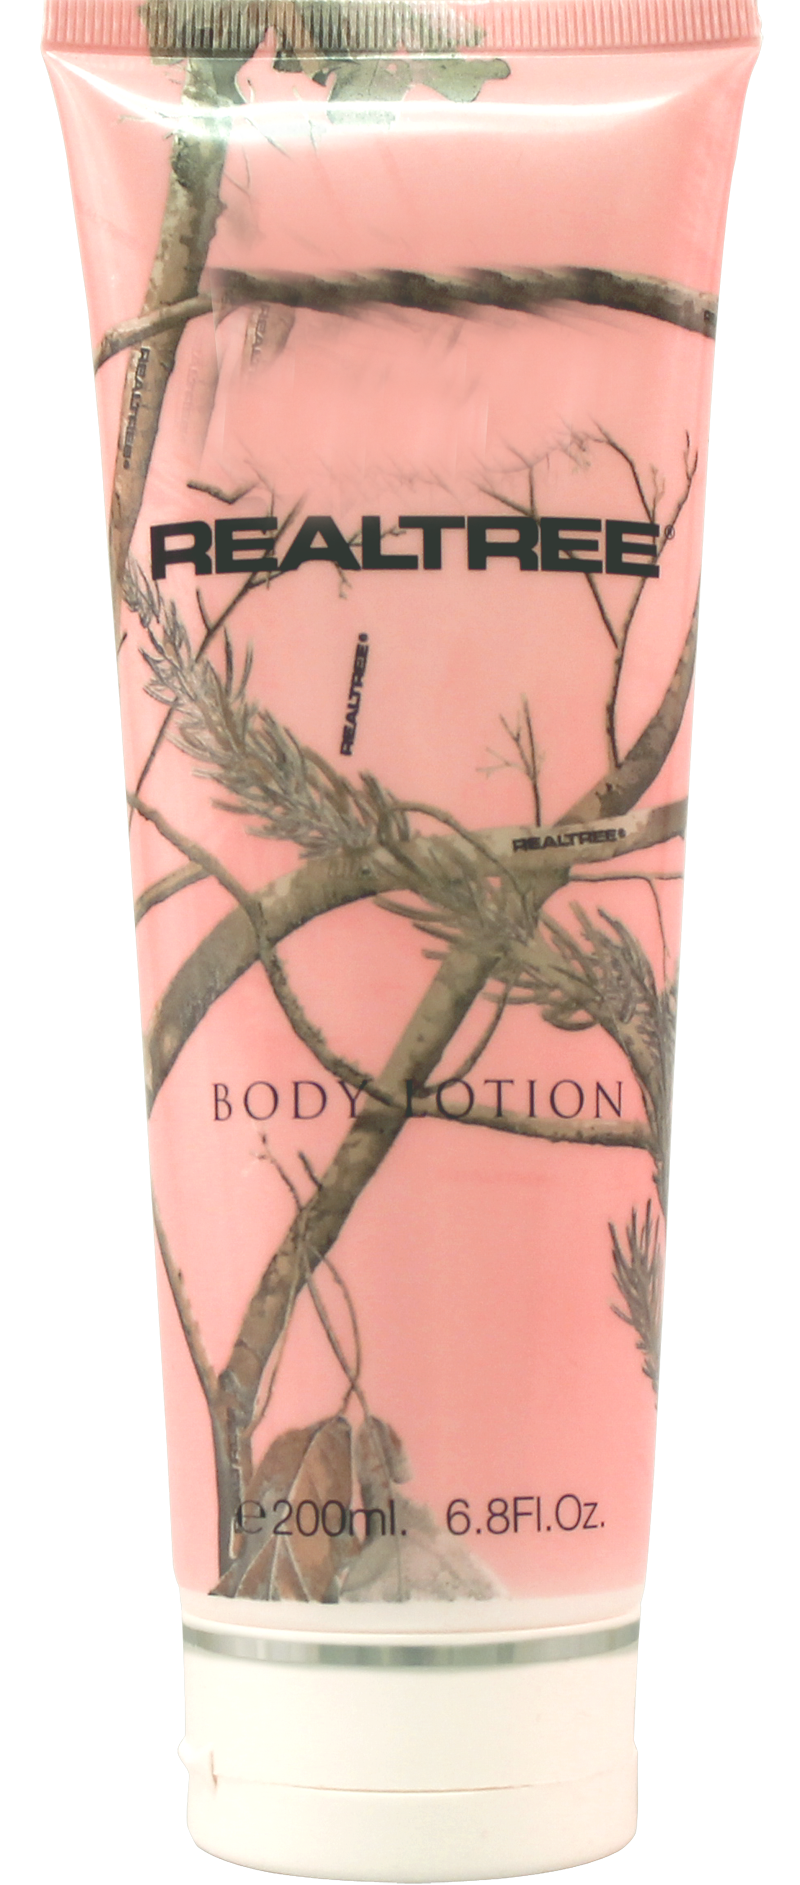 realtree-for-her-body-lotio_1